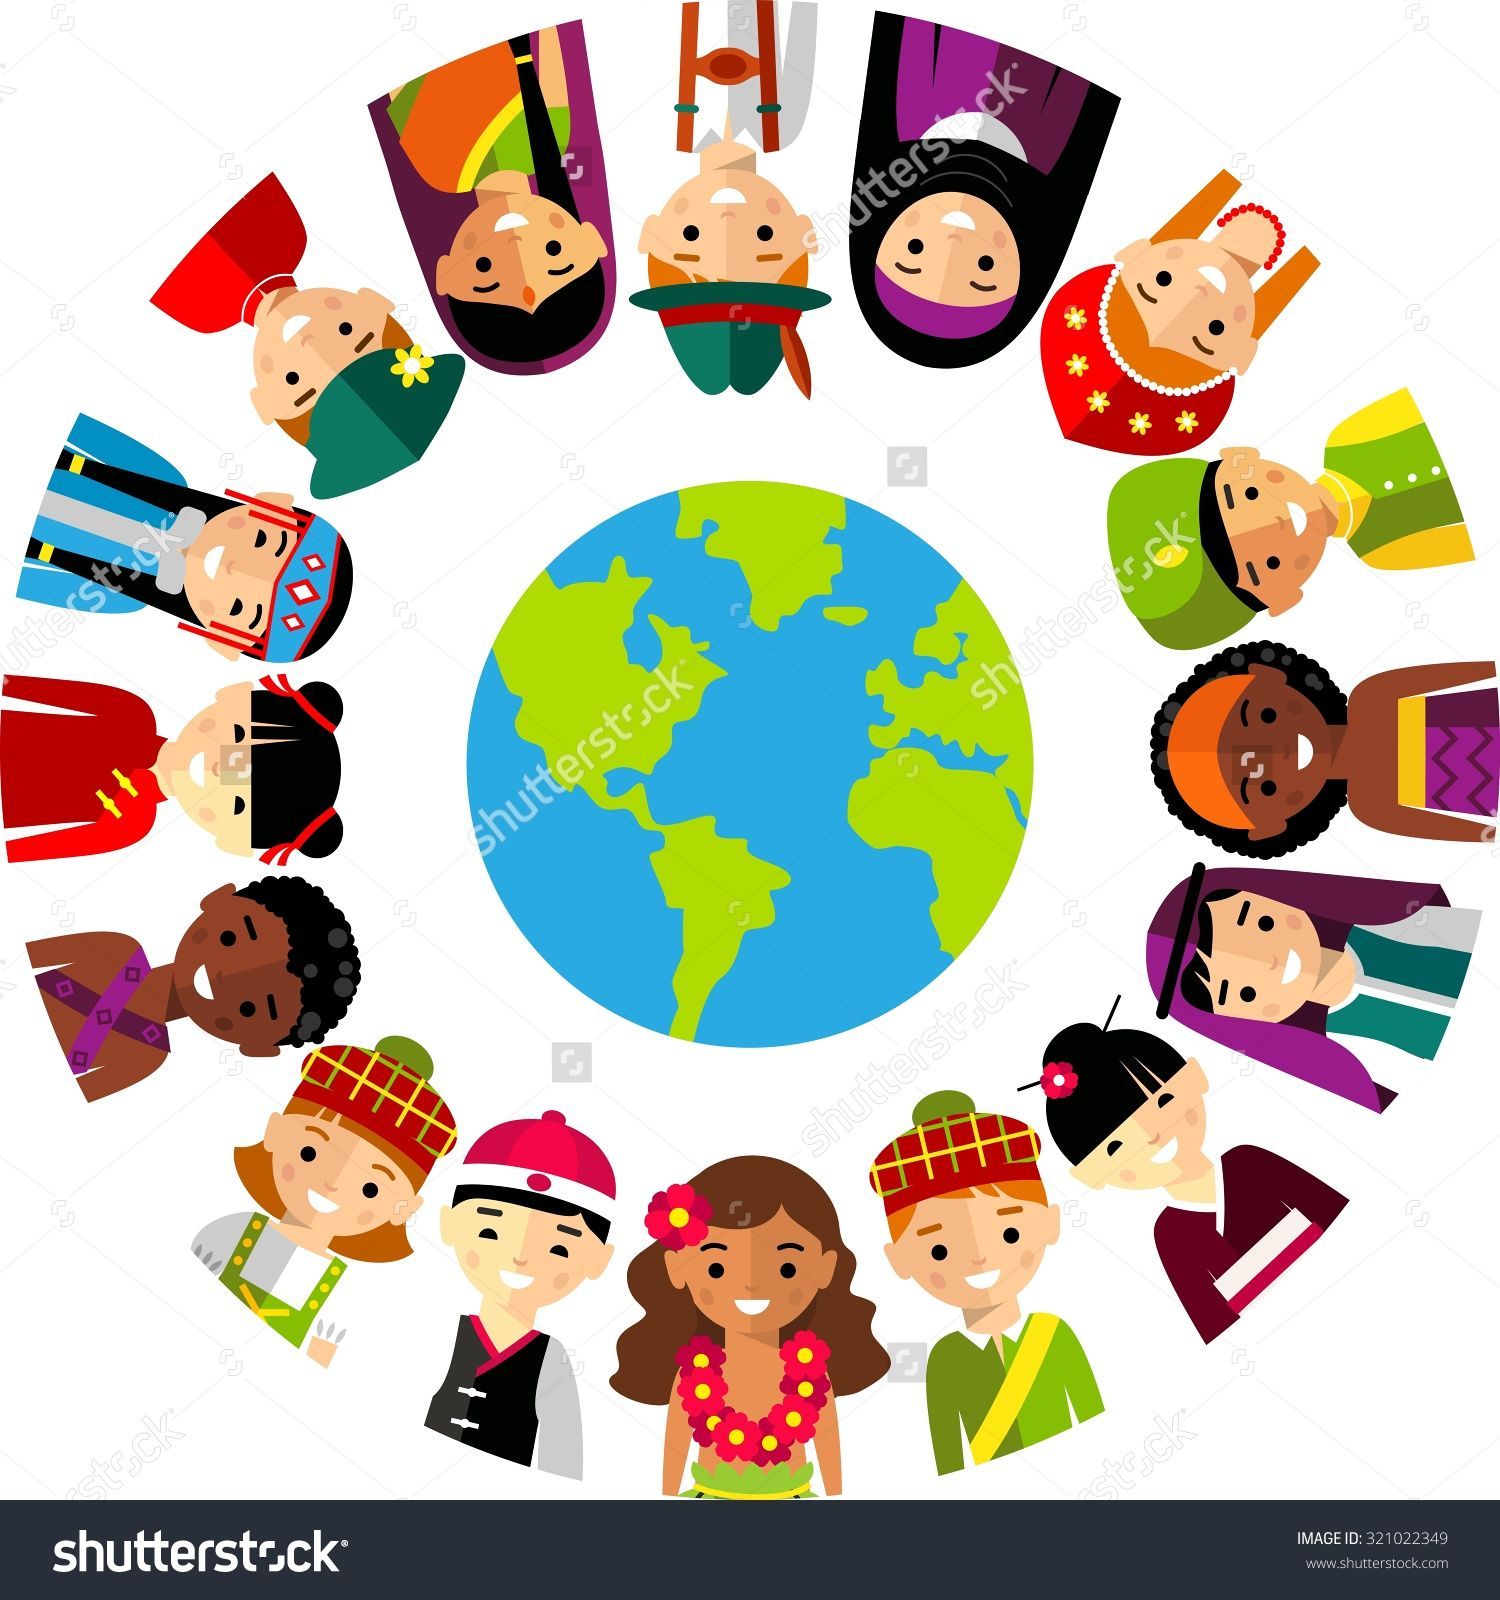 Child Images Clip Page 2 Multicultural Friendship by Clipart ... clip stock